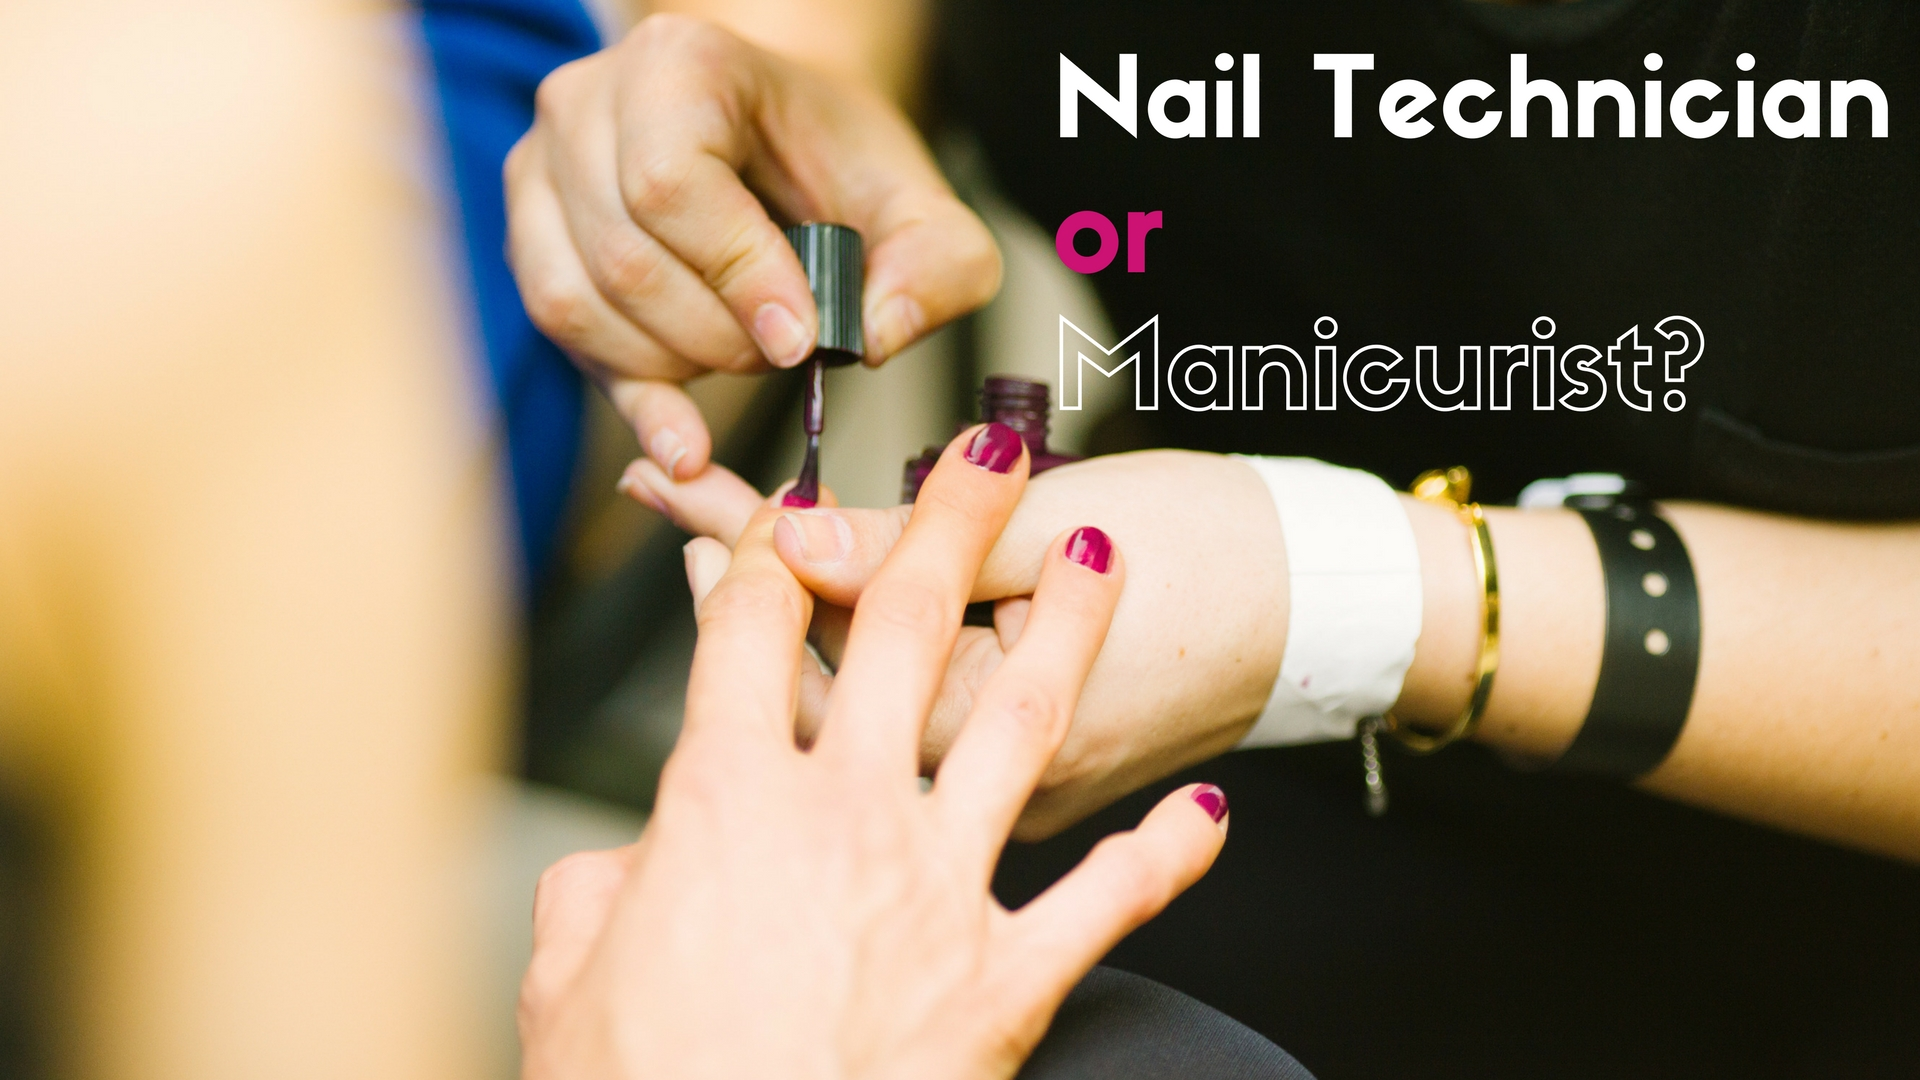 The Difference Between A Manicurist And A Nail Technician